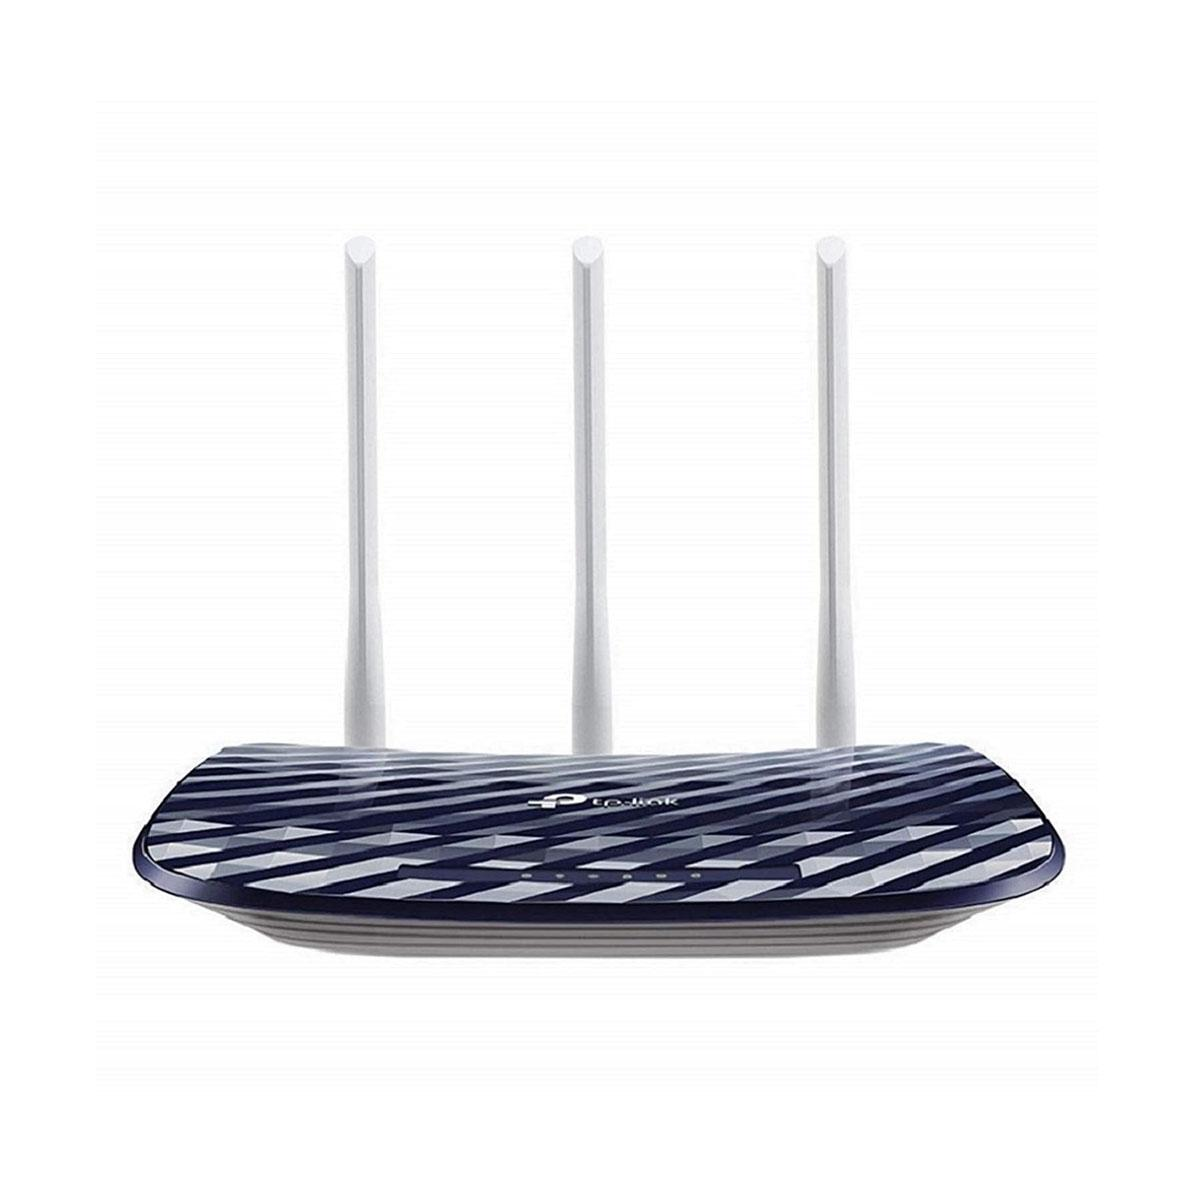 TP-Link AC750 Wireless Dual Band Router - Archer C20